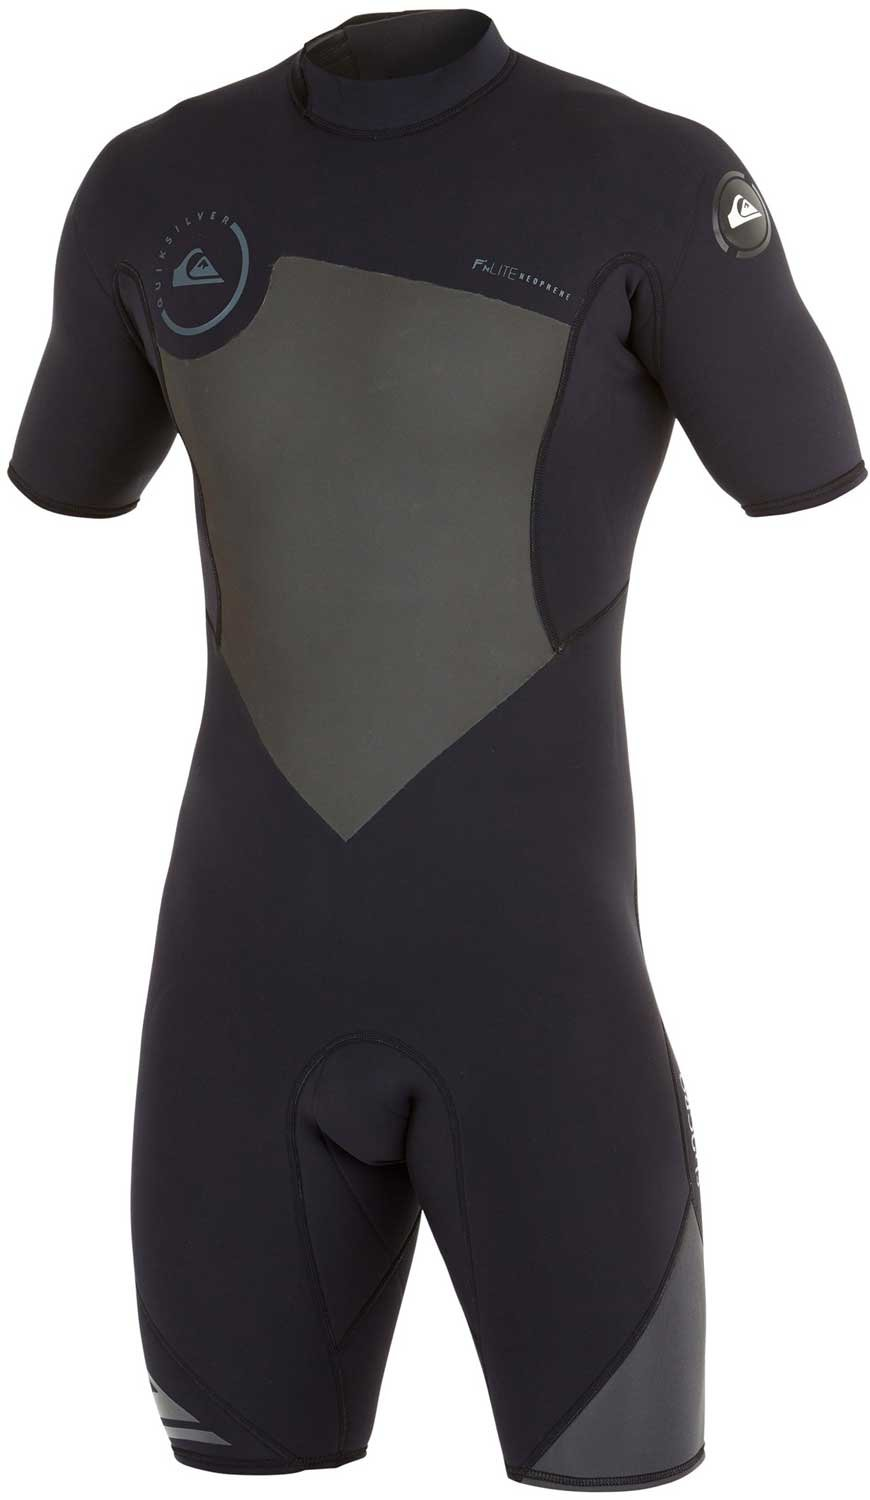 Quiksilver Mens 2/2mm Syncro BZ Springsuit Wetsuit, Black/Graphite, Small by Quiksilver